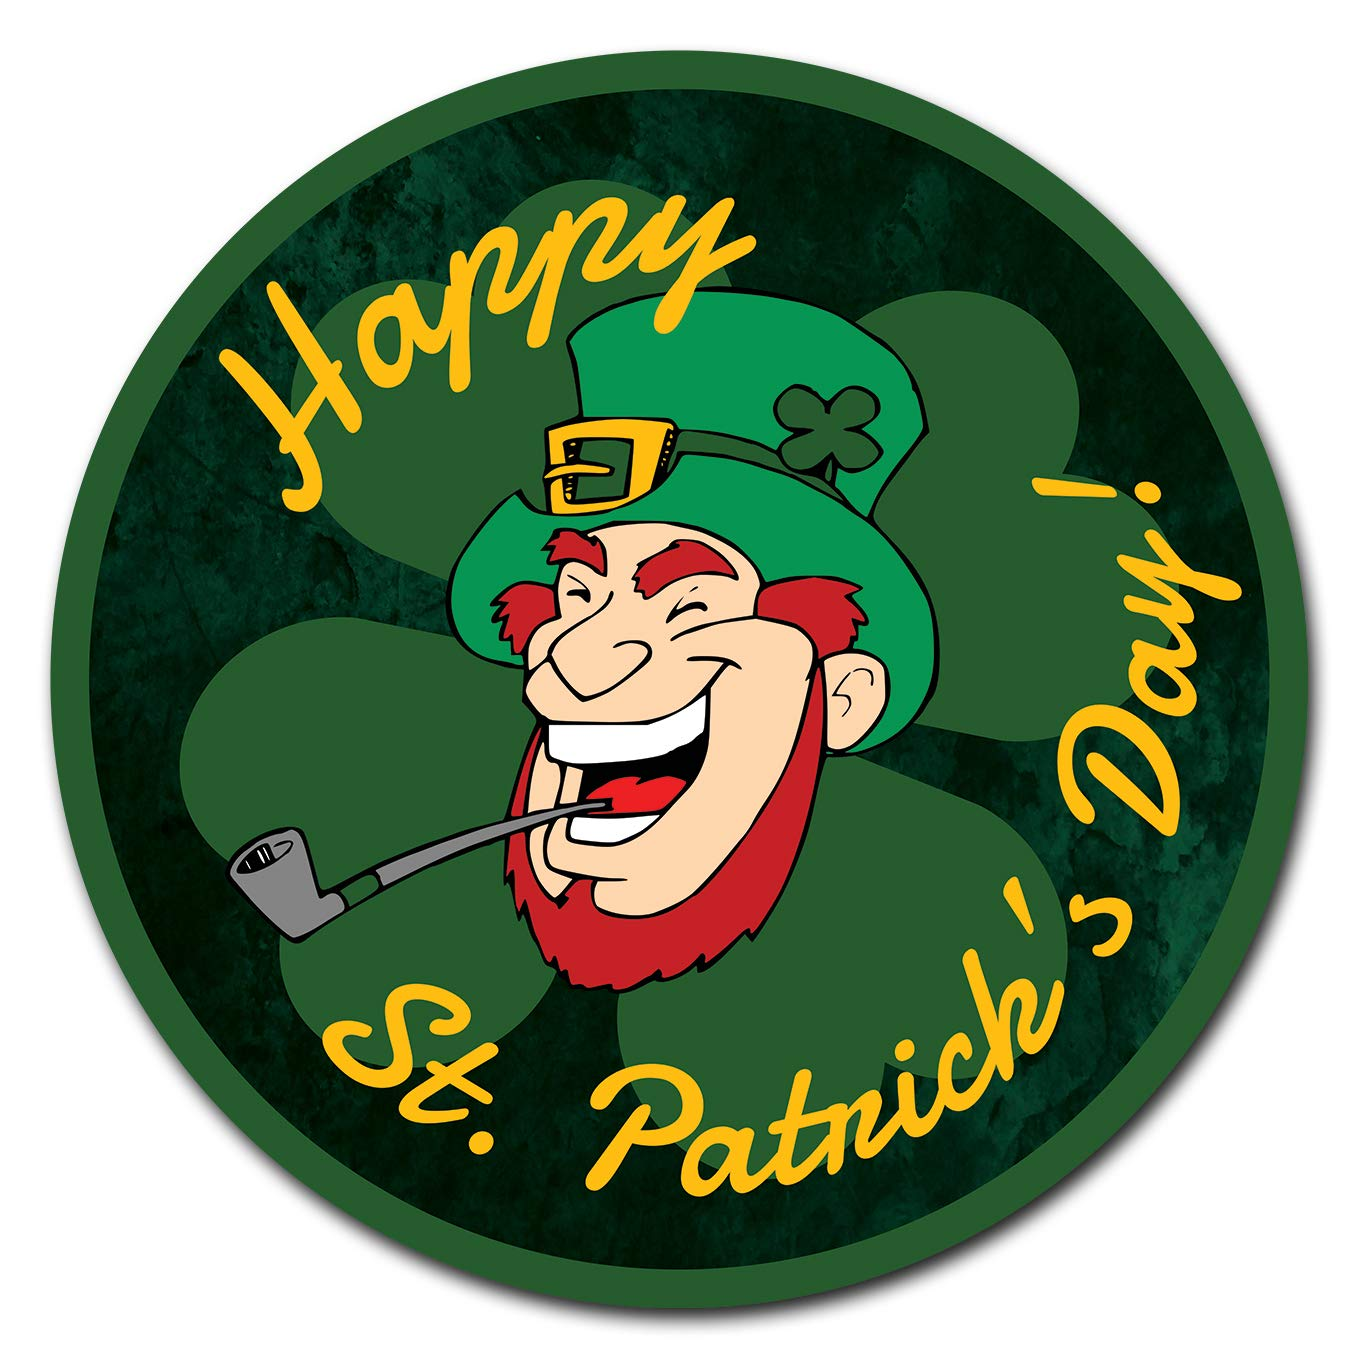 SignMission Vinyl Laminated Decal 12' Tall - Happy St Patrick Day 2 | Decal |  Made in The USA